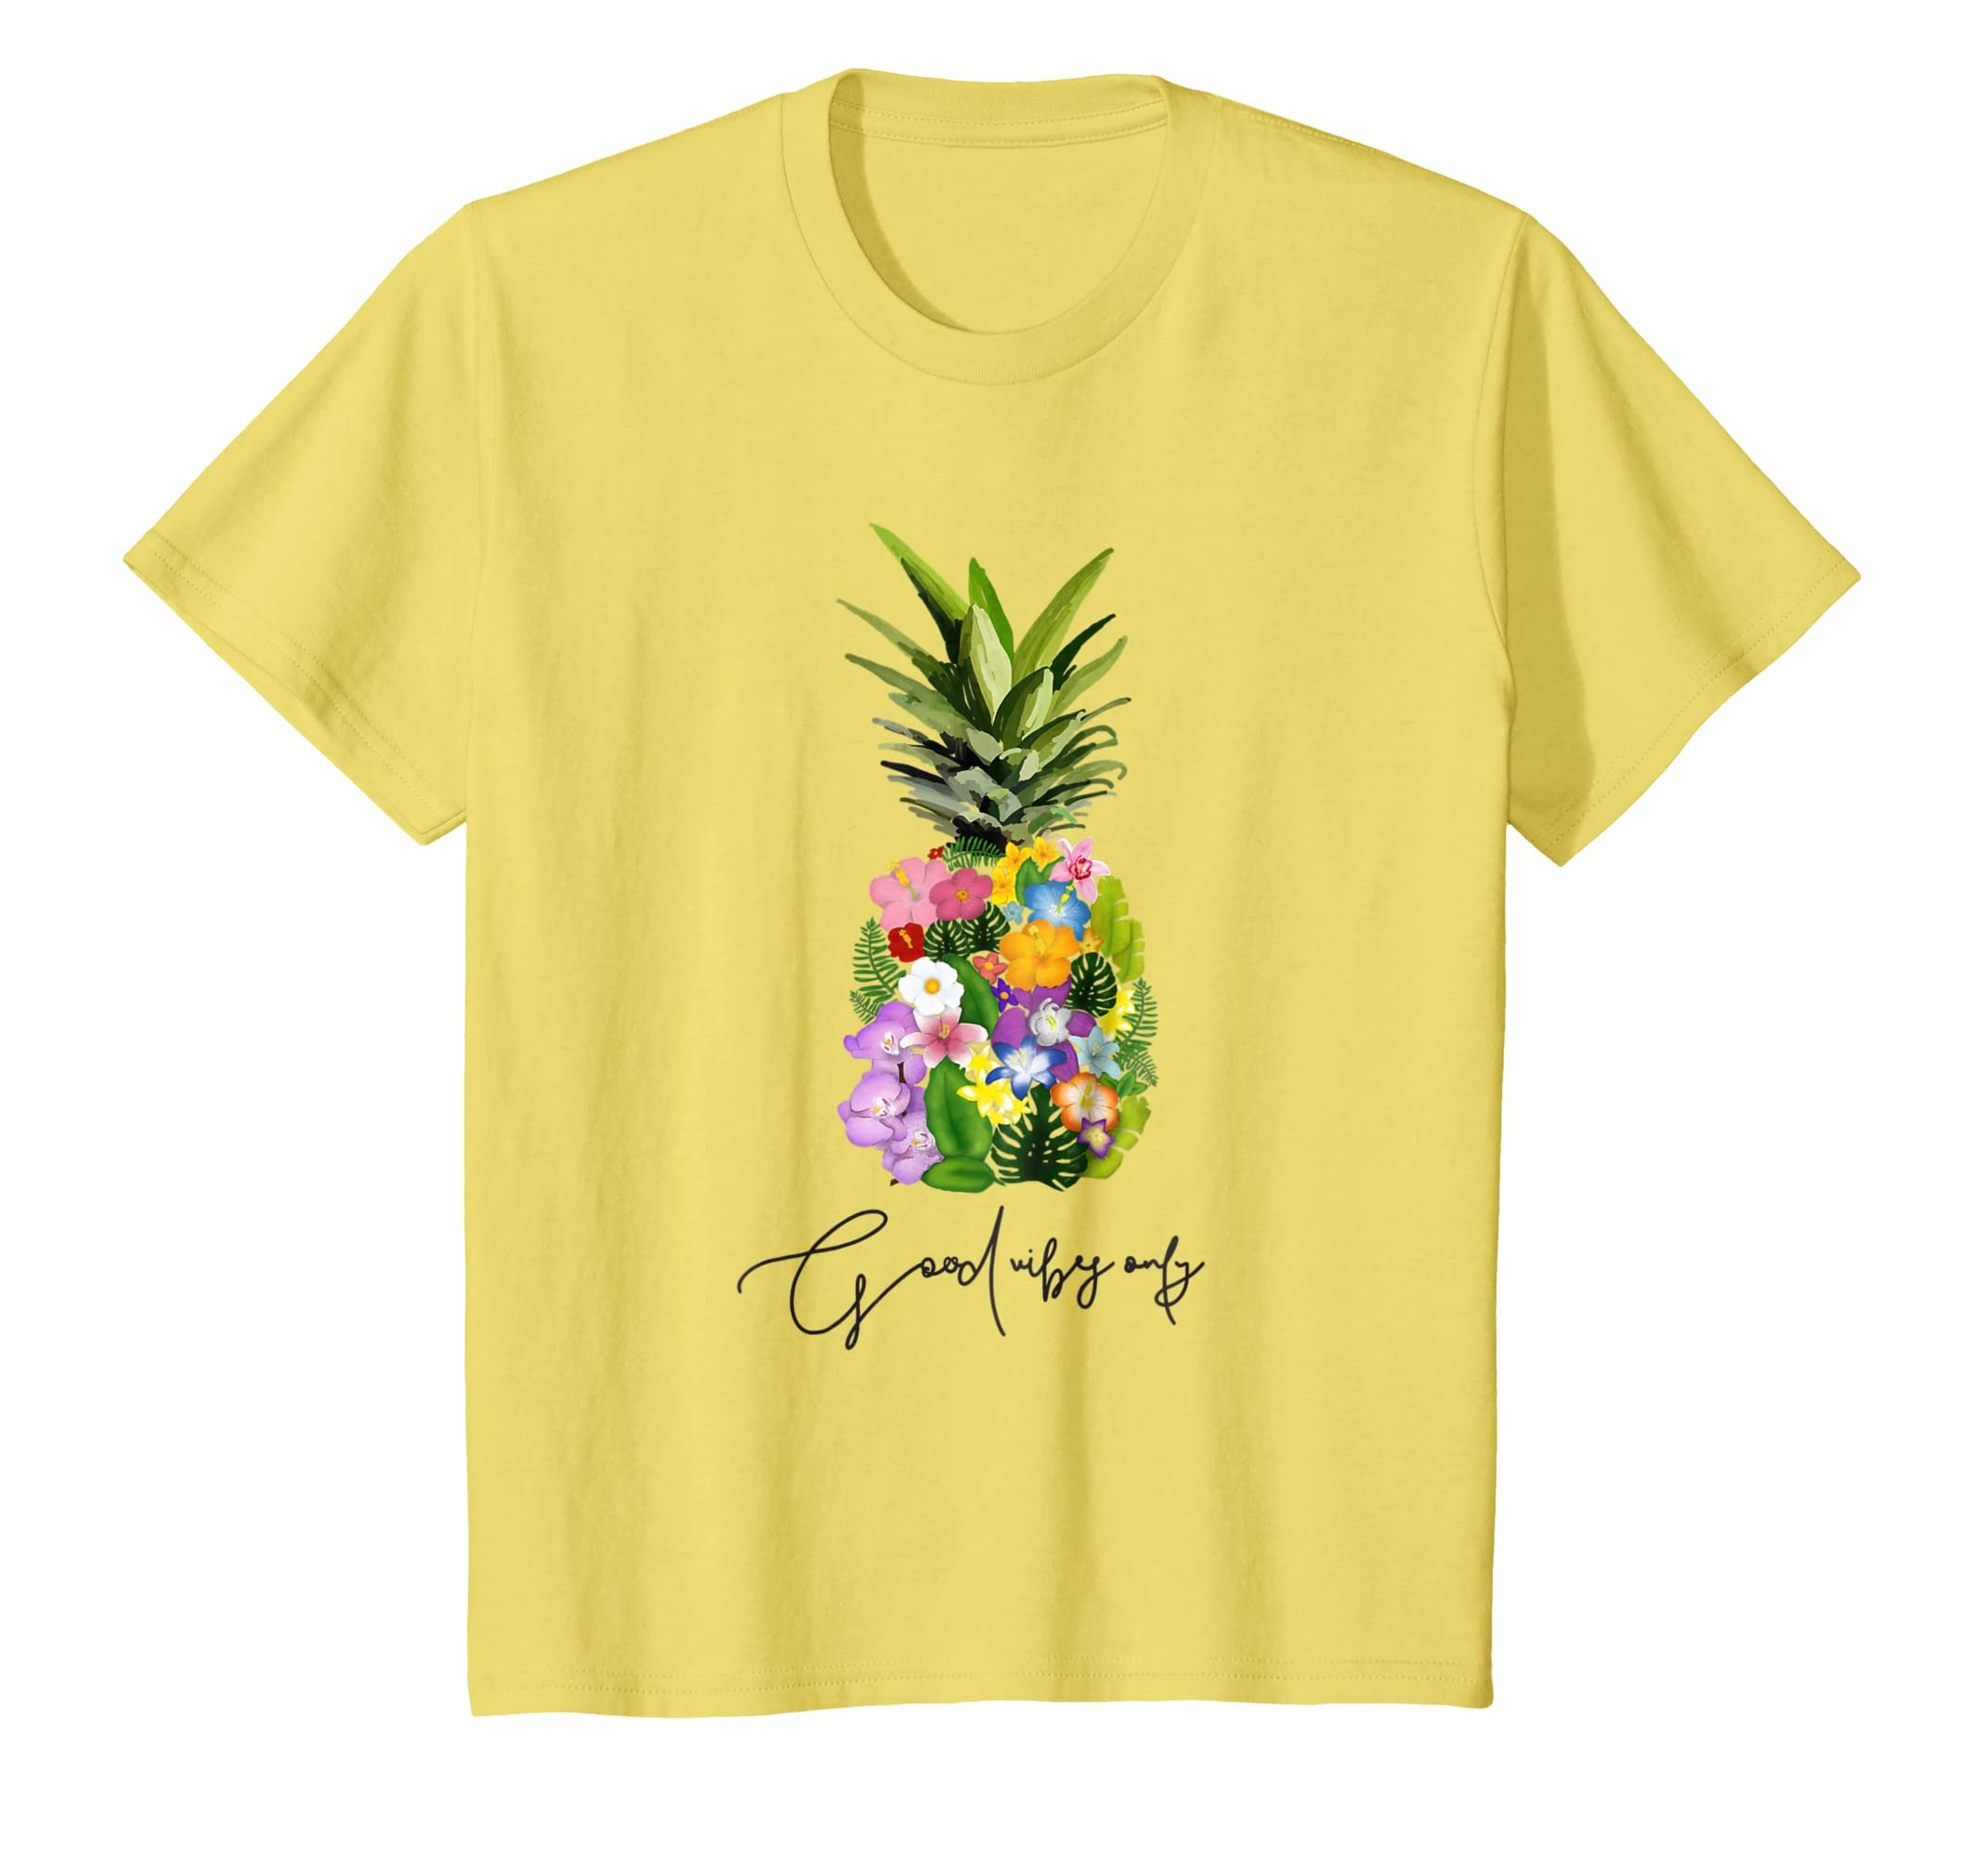 f1a46fd75371fe Amazon.com  Pineapple Flower Yellow Tee Good Vibes Floral Trendy Graphic   Clothing